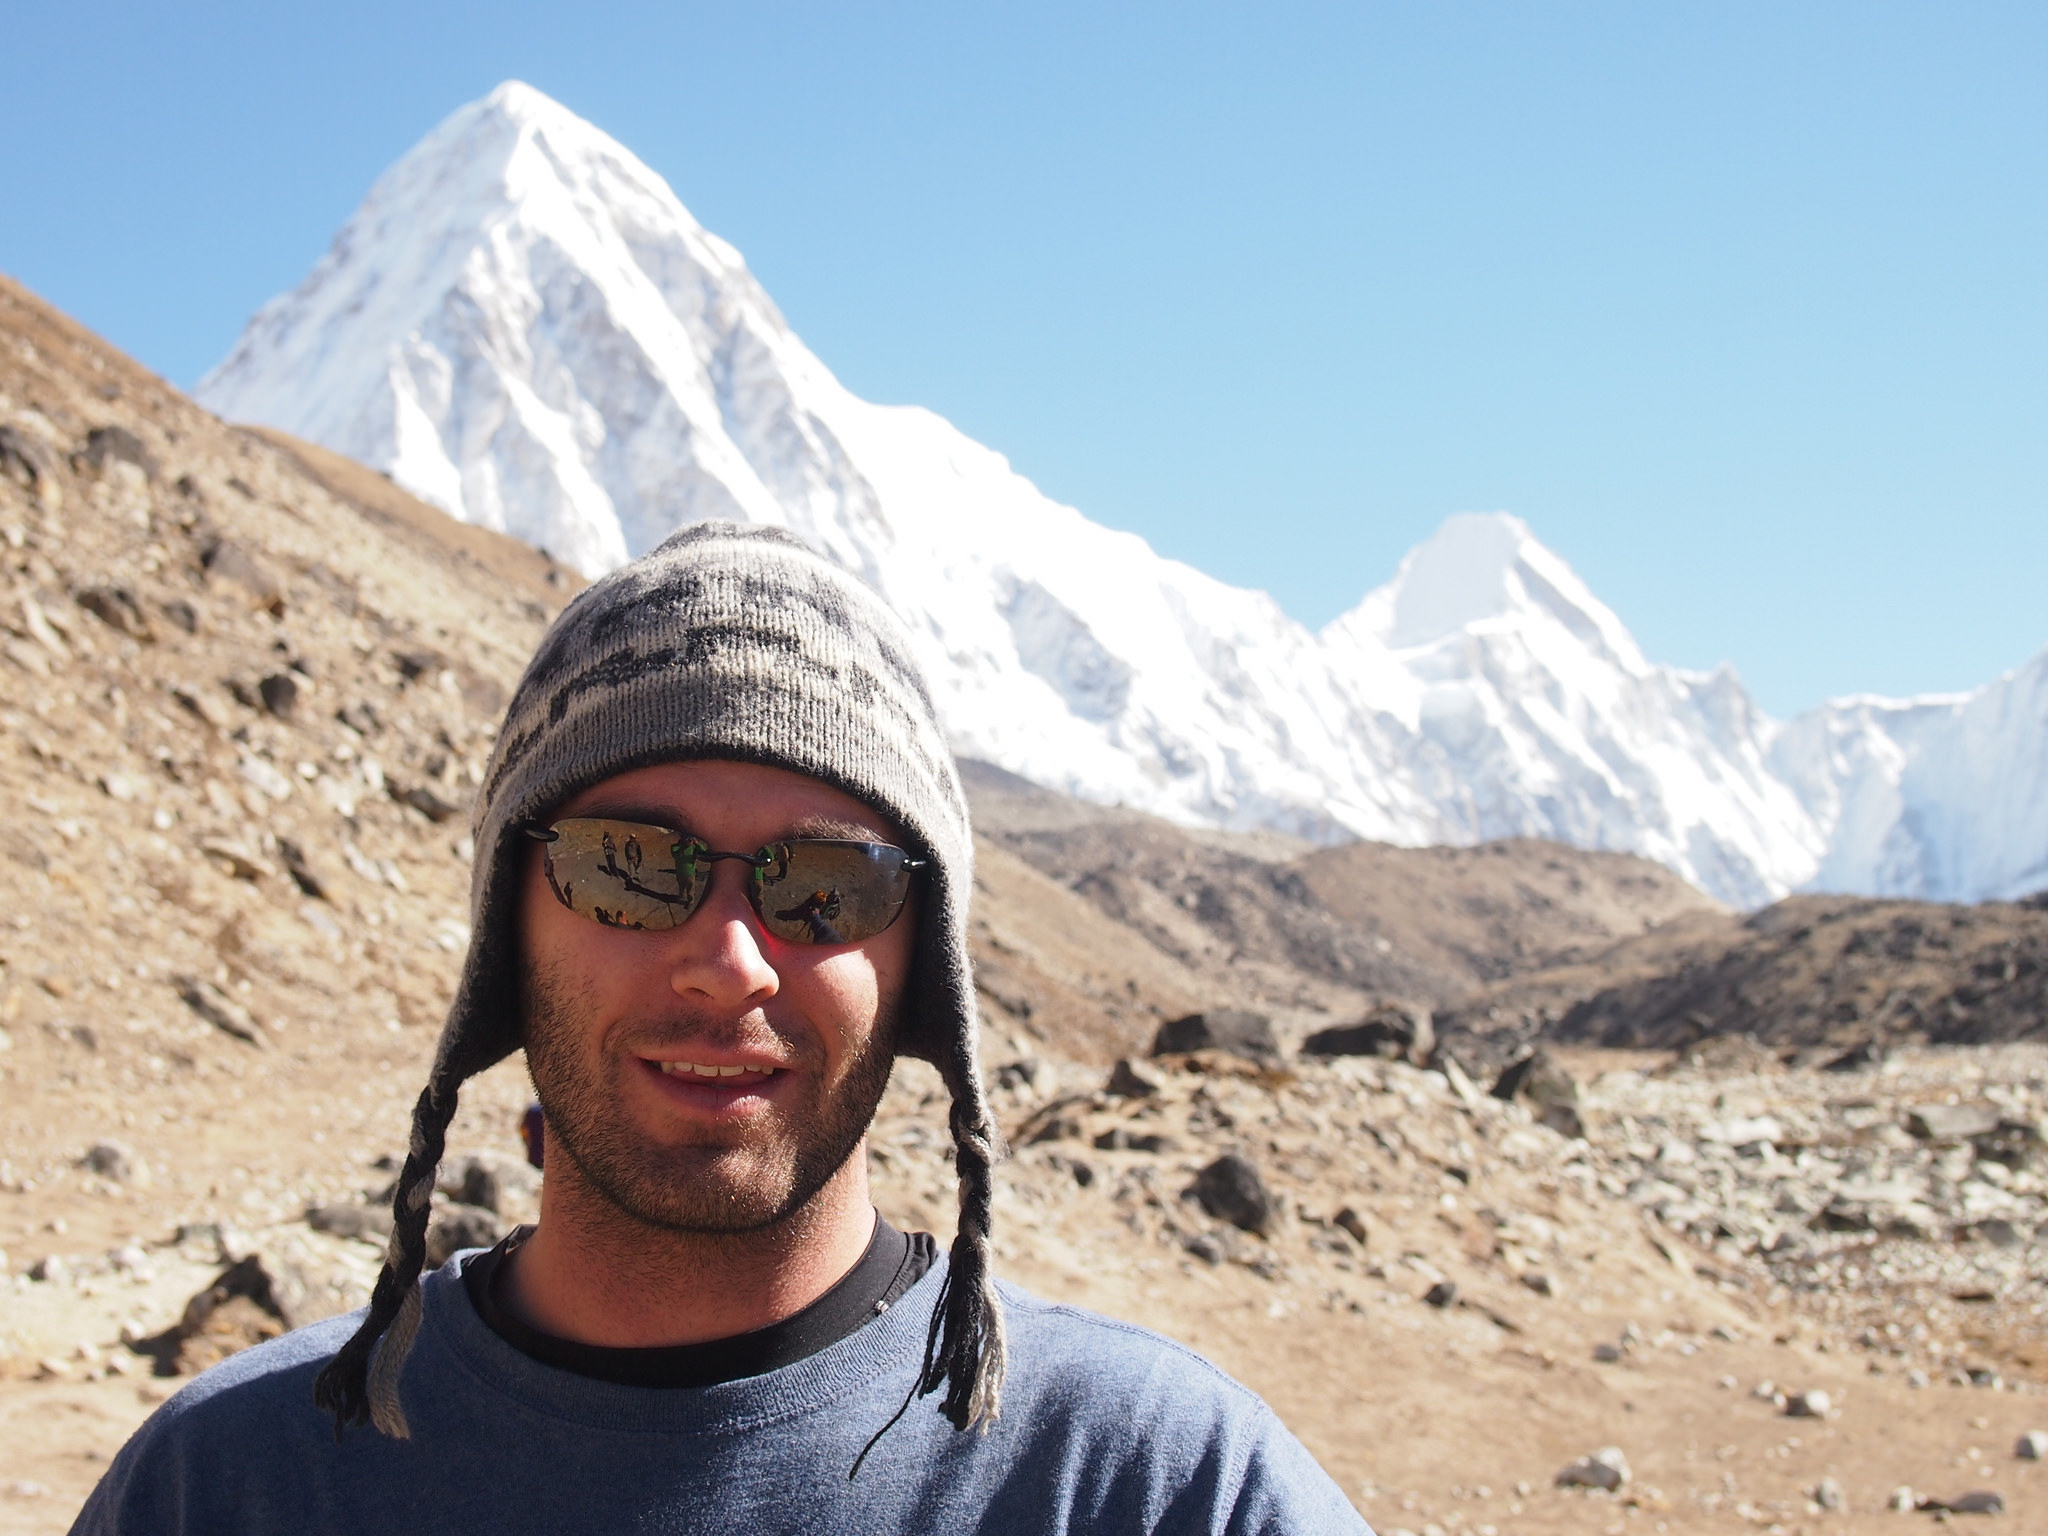 Dan on the Everest Base Camp trek